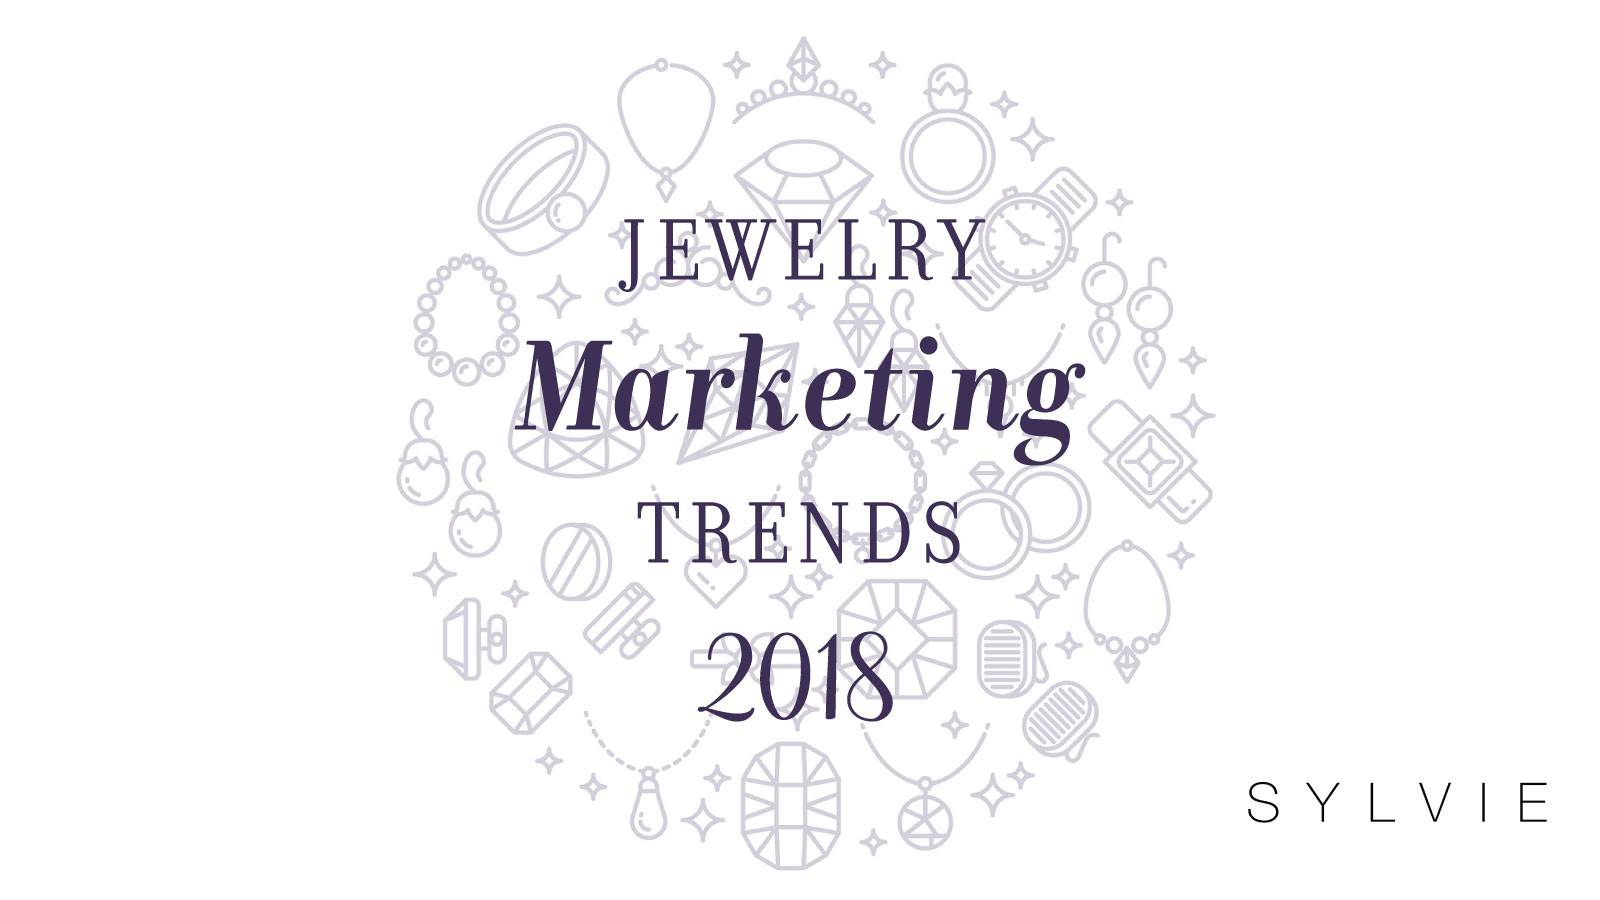 The 3 Biggest Trends for Jewelry Marketing in 2018